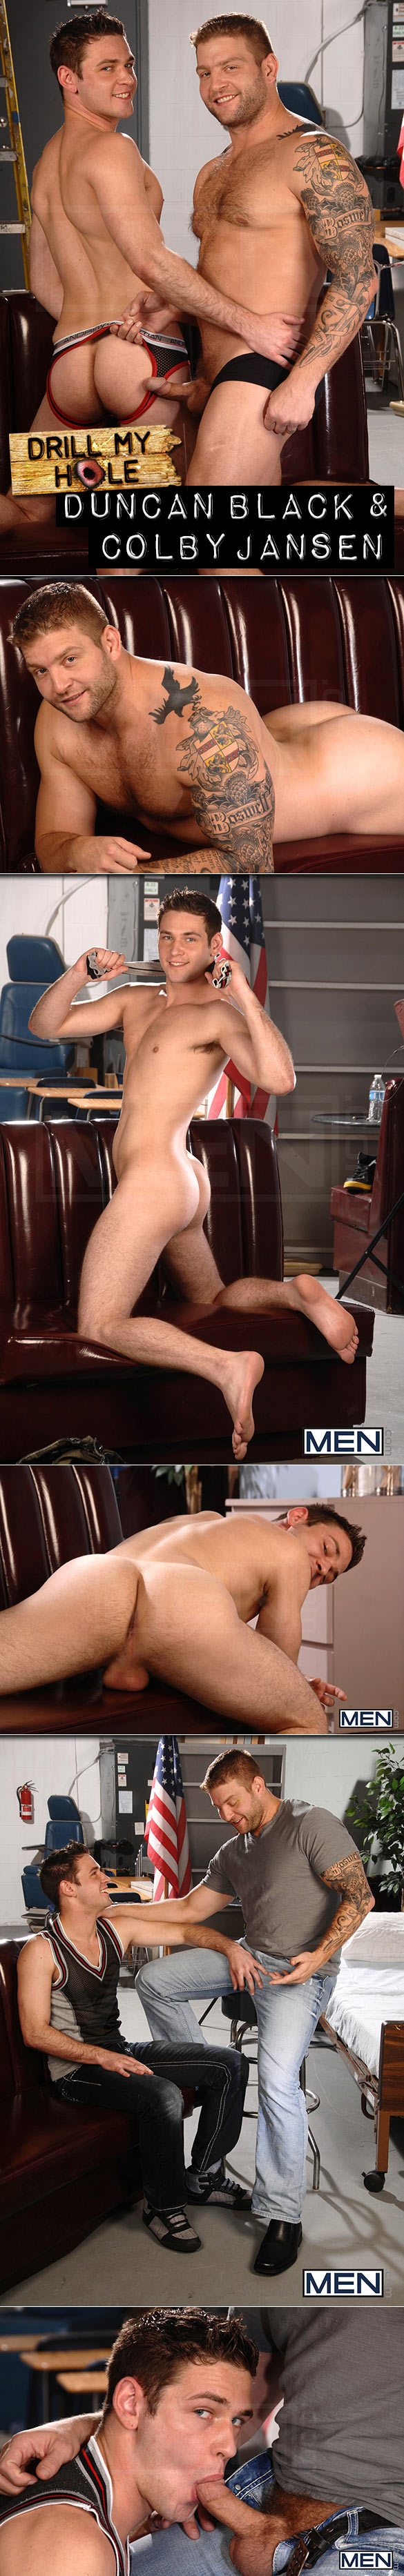 "Men.com: Duncan Black gets fucked by Colby Jansen in ""The New Exclusive"""